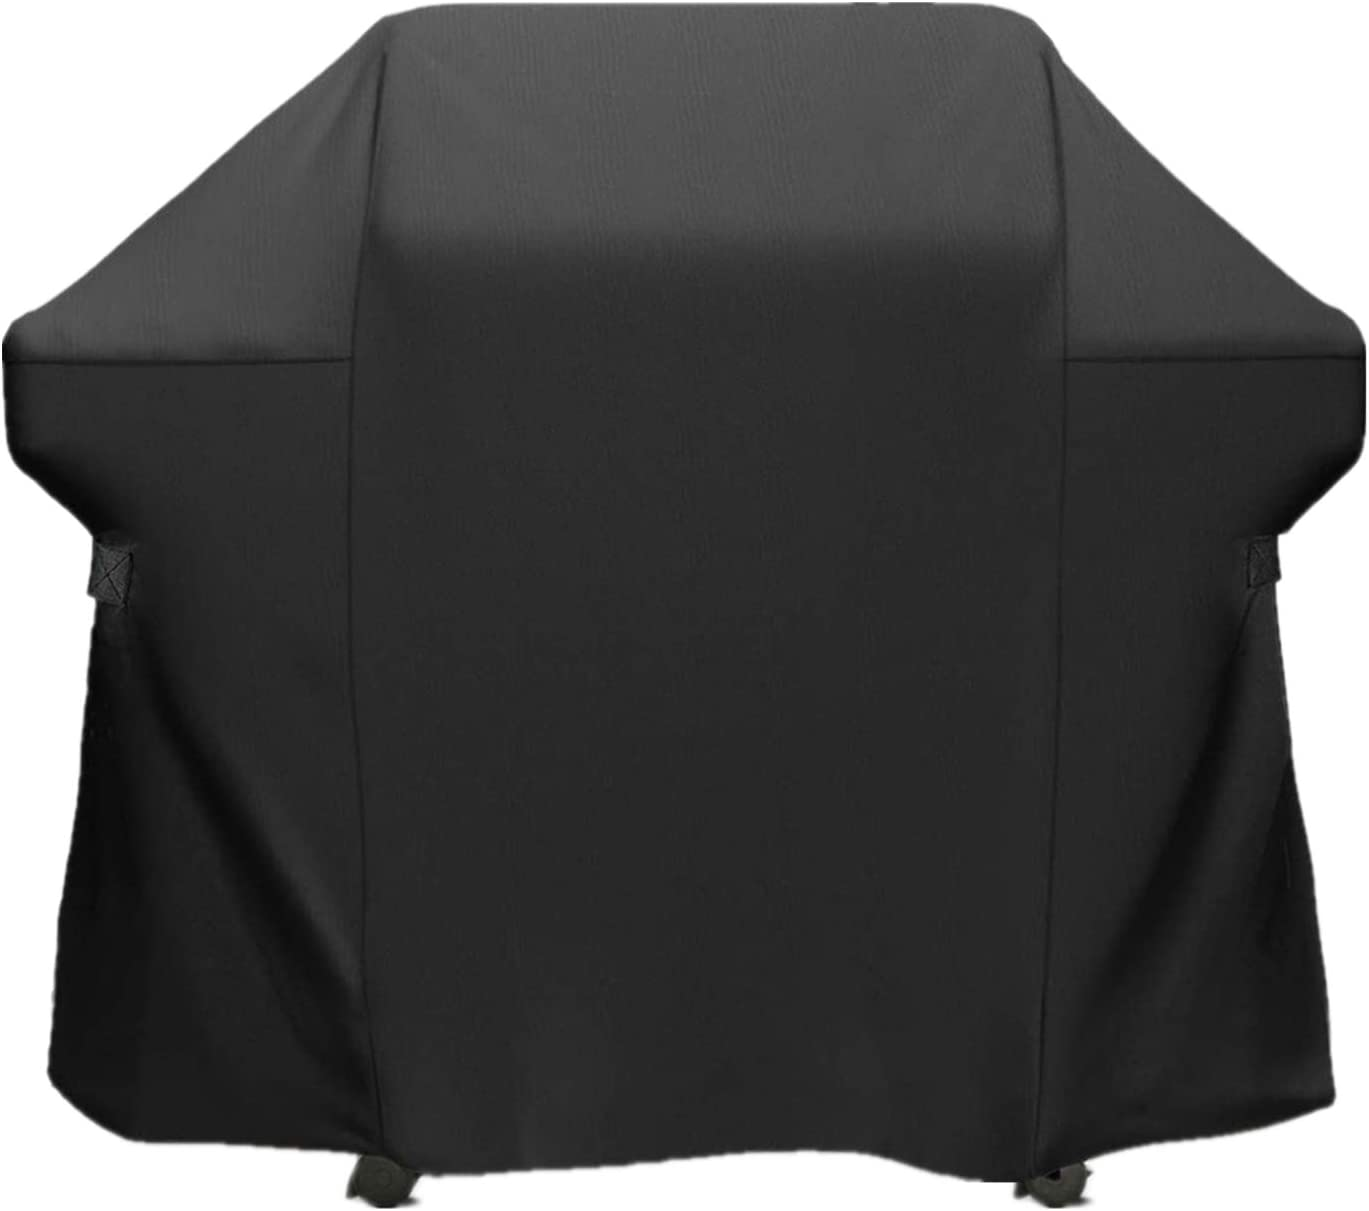 UpStart Components Gas Grill Cover Waterproof Duty cheap Replace Heavy online shop